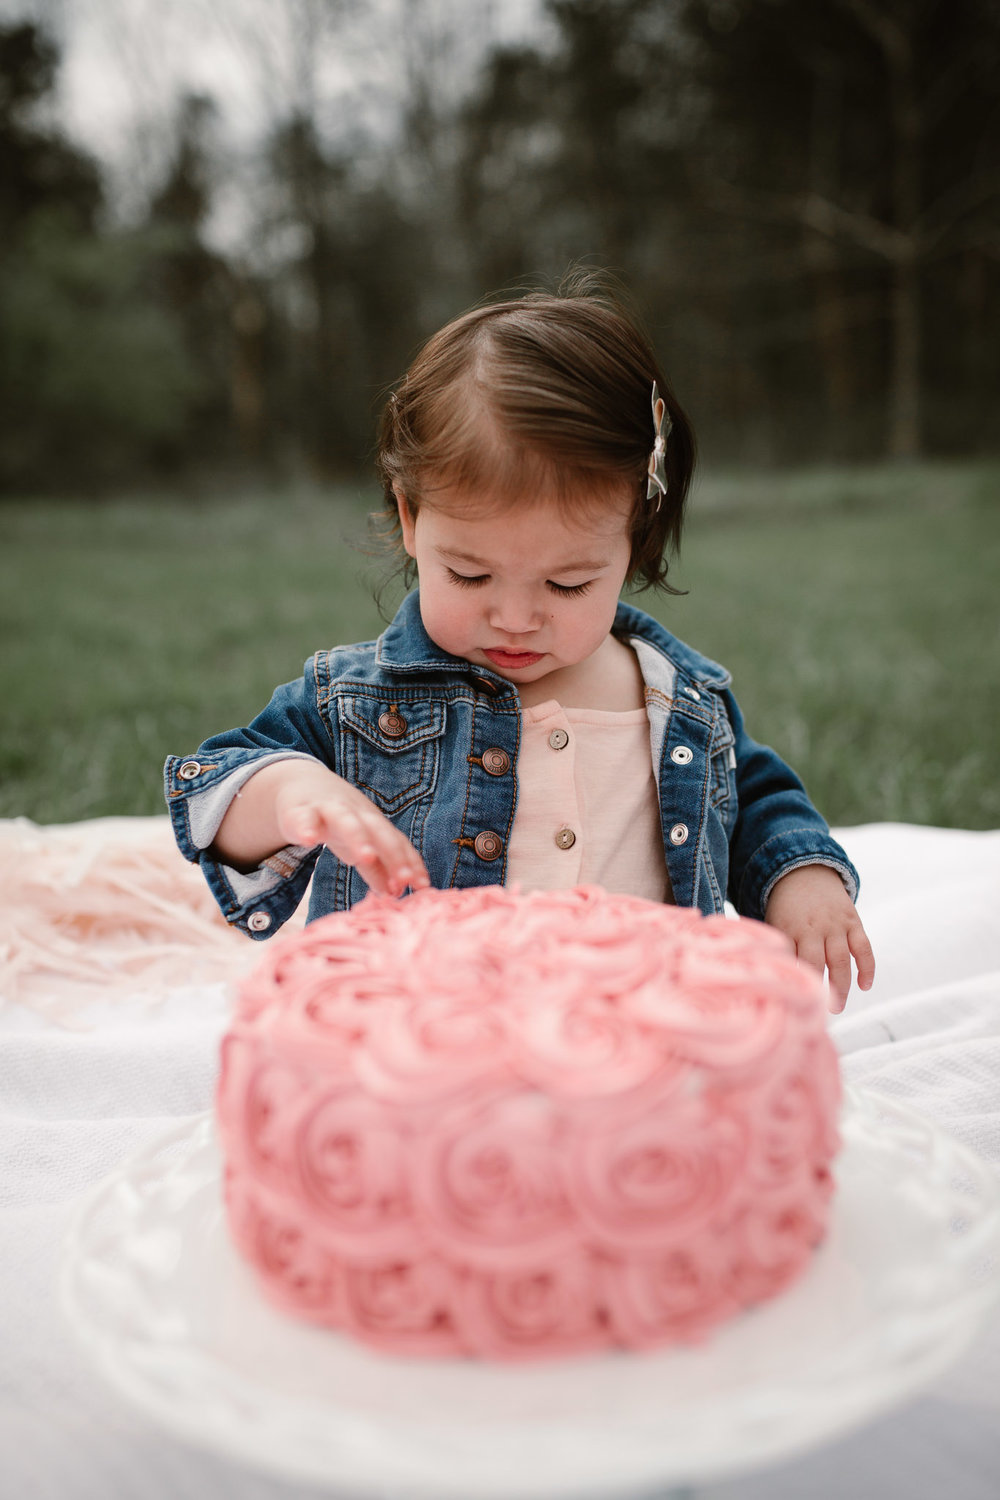 Toddler girl in a jean jacket examines her pink birthday cake at Red Rock Overlook in Leesburg, VA